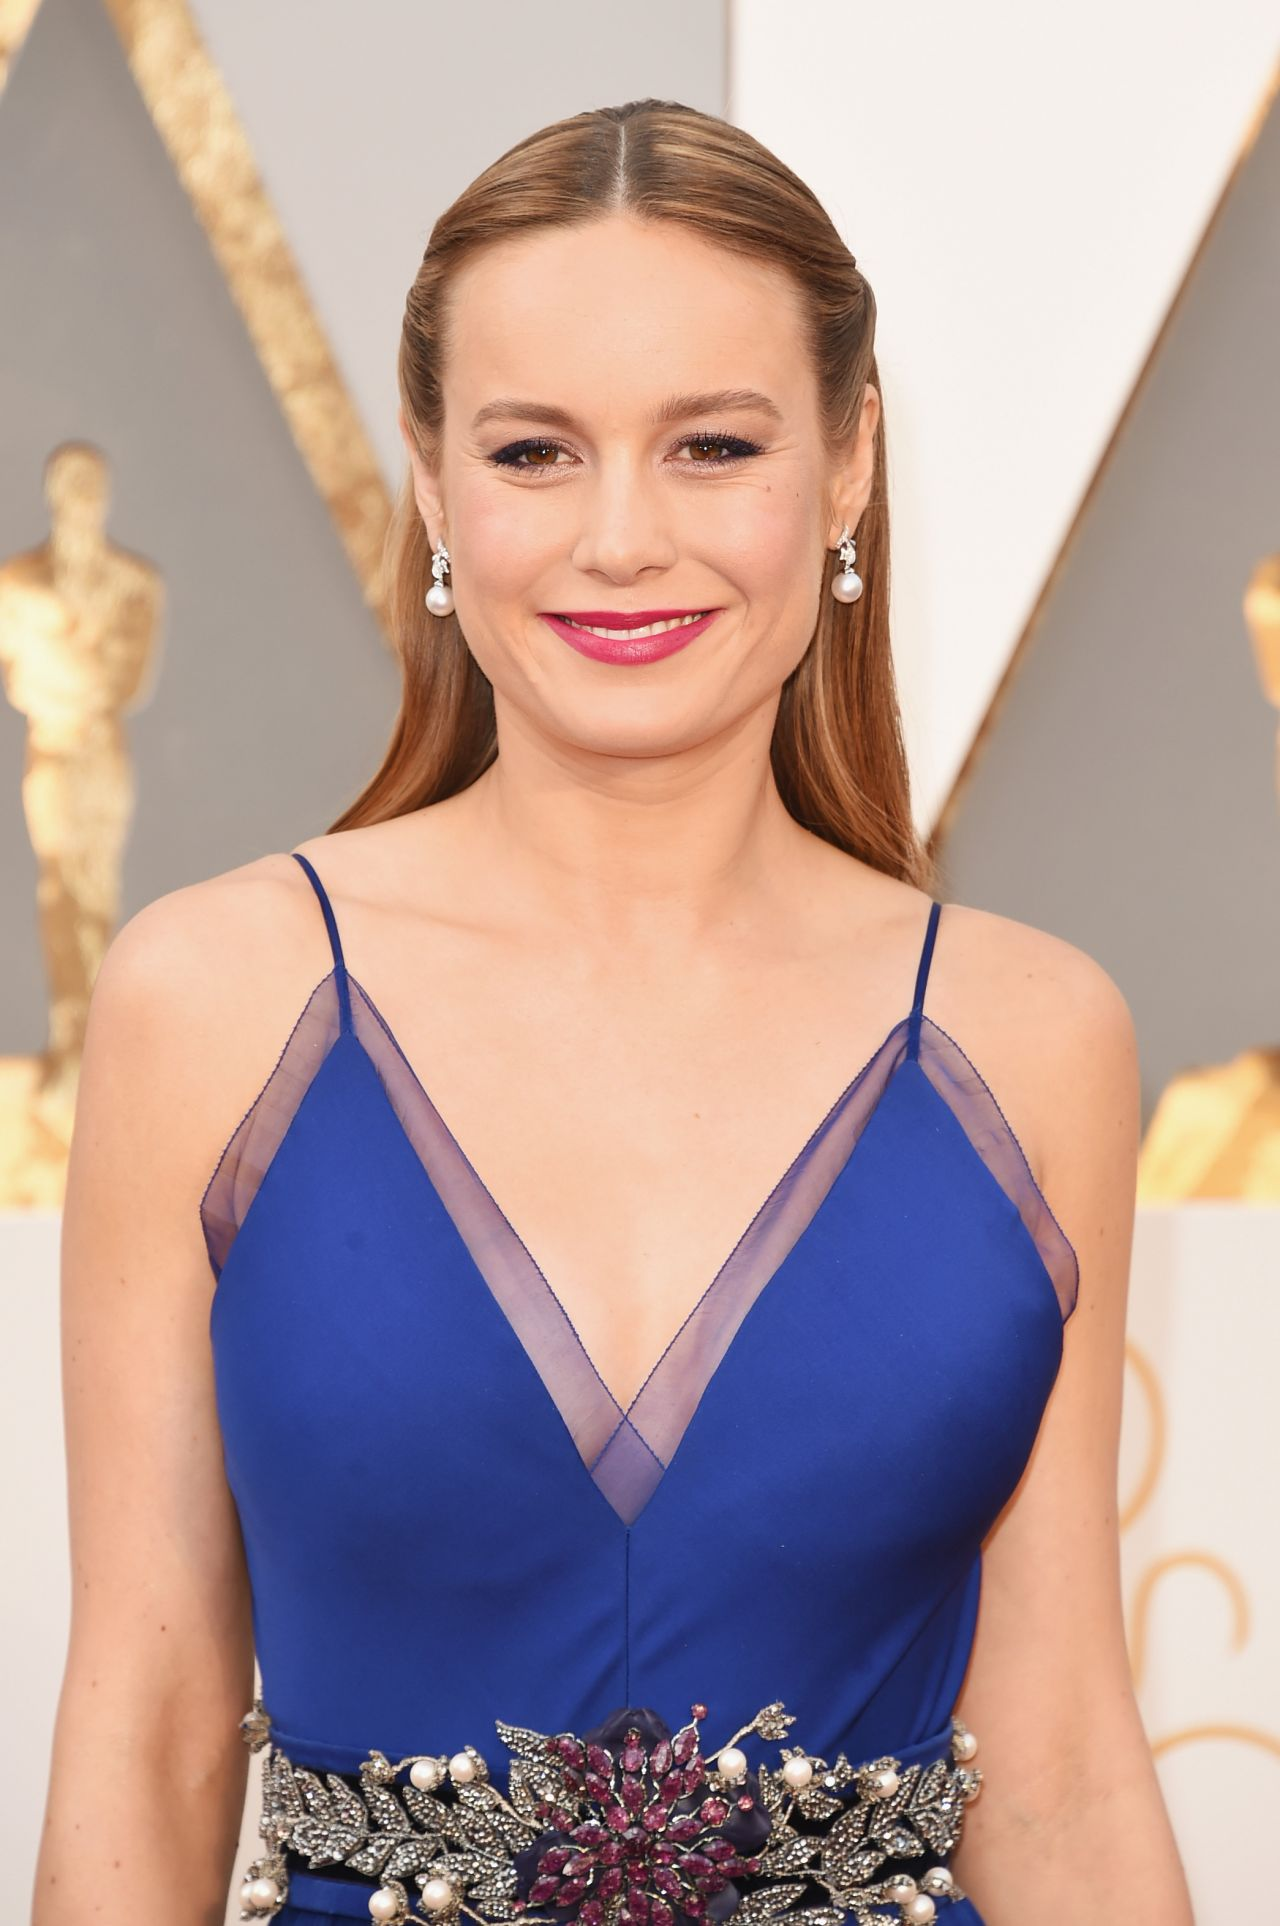 brie-larson-oscars-2016-in-hollywood-ca-2-28-2016-1